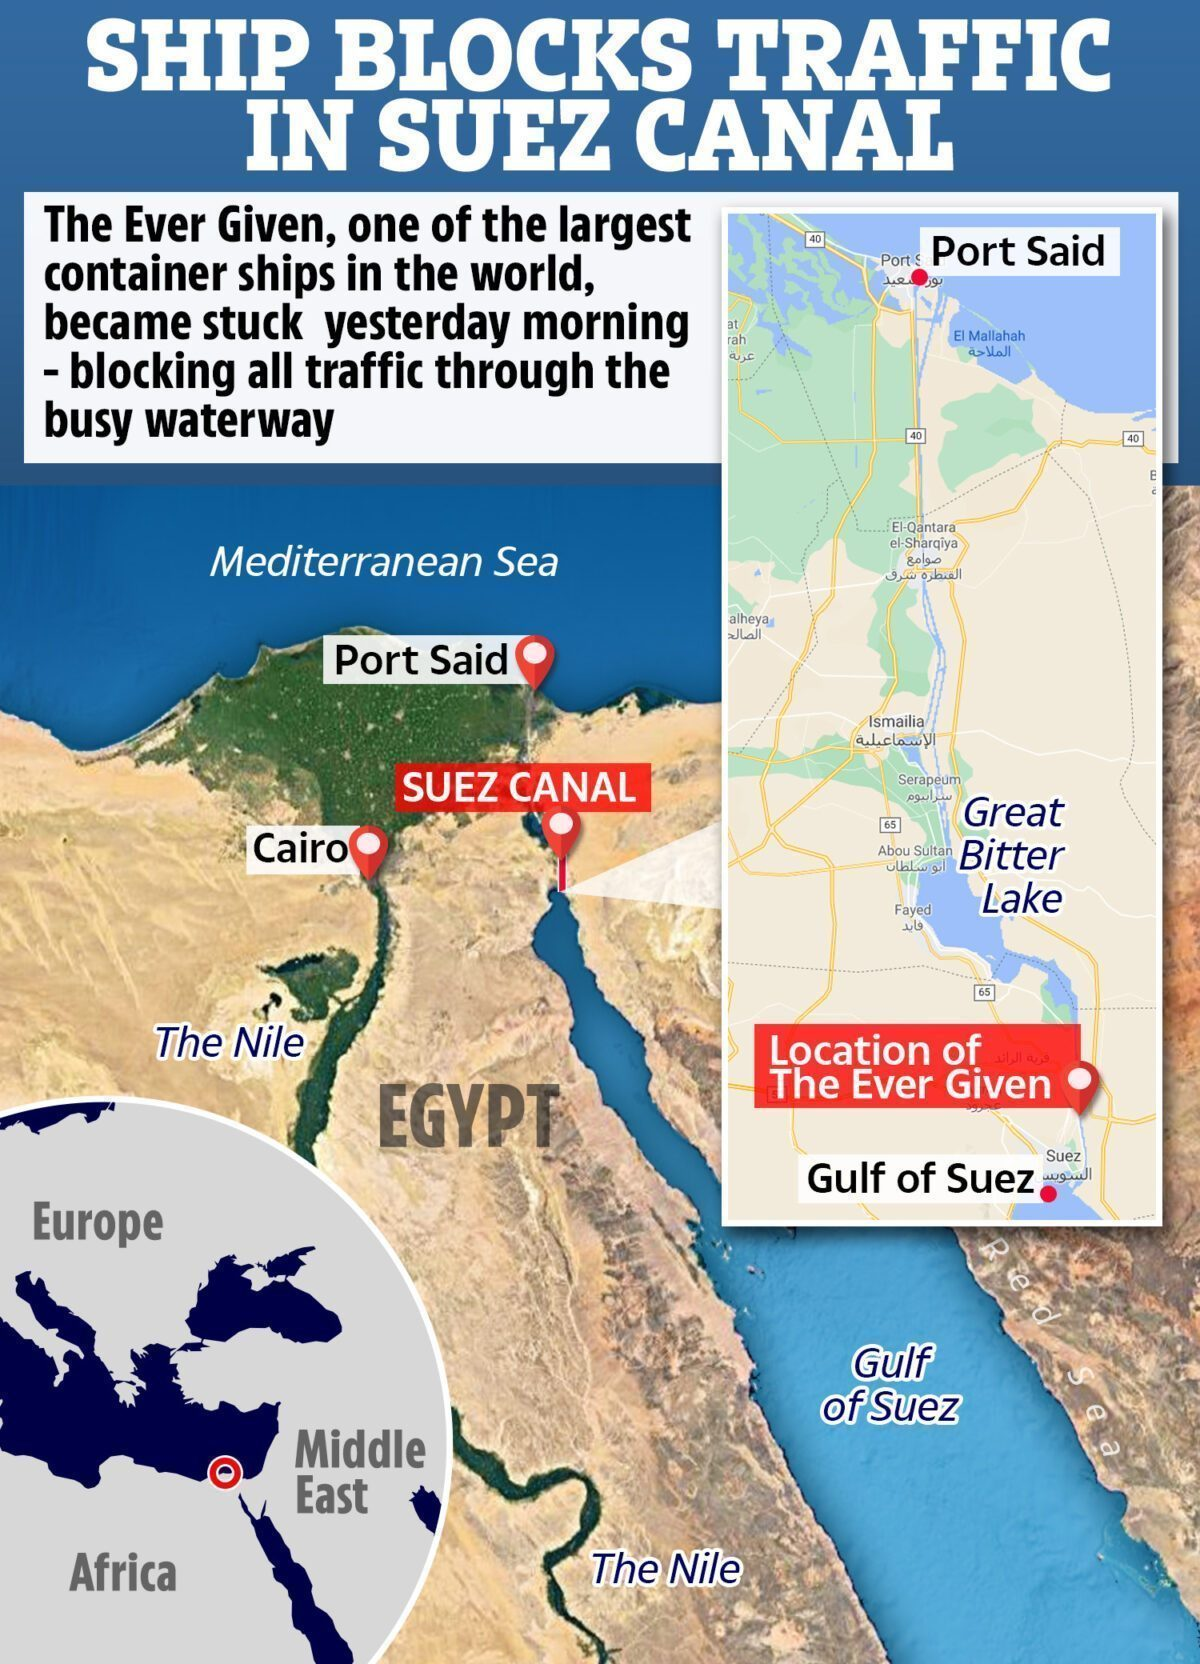 SEUZ CANAL CRISIS - PLANNED OR ACCIDENT?